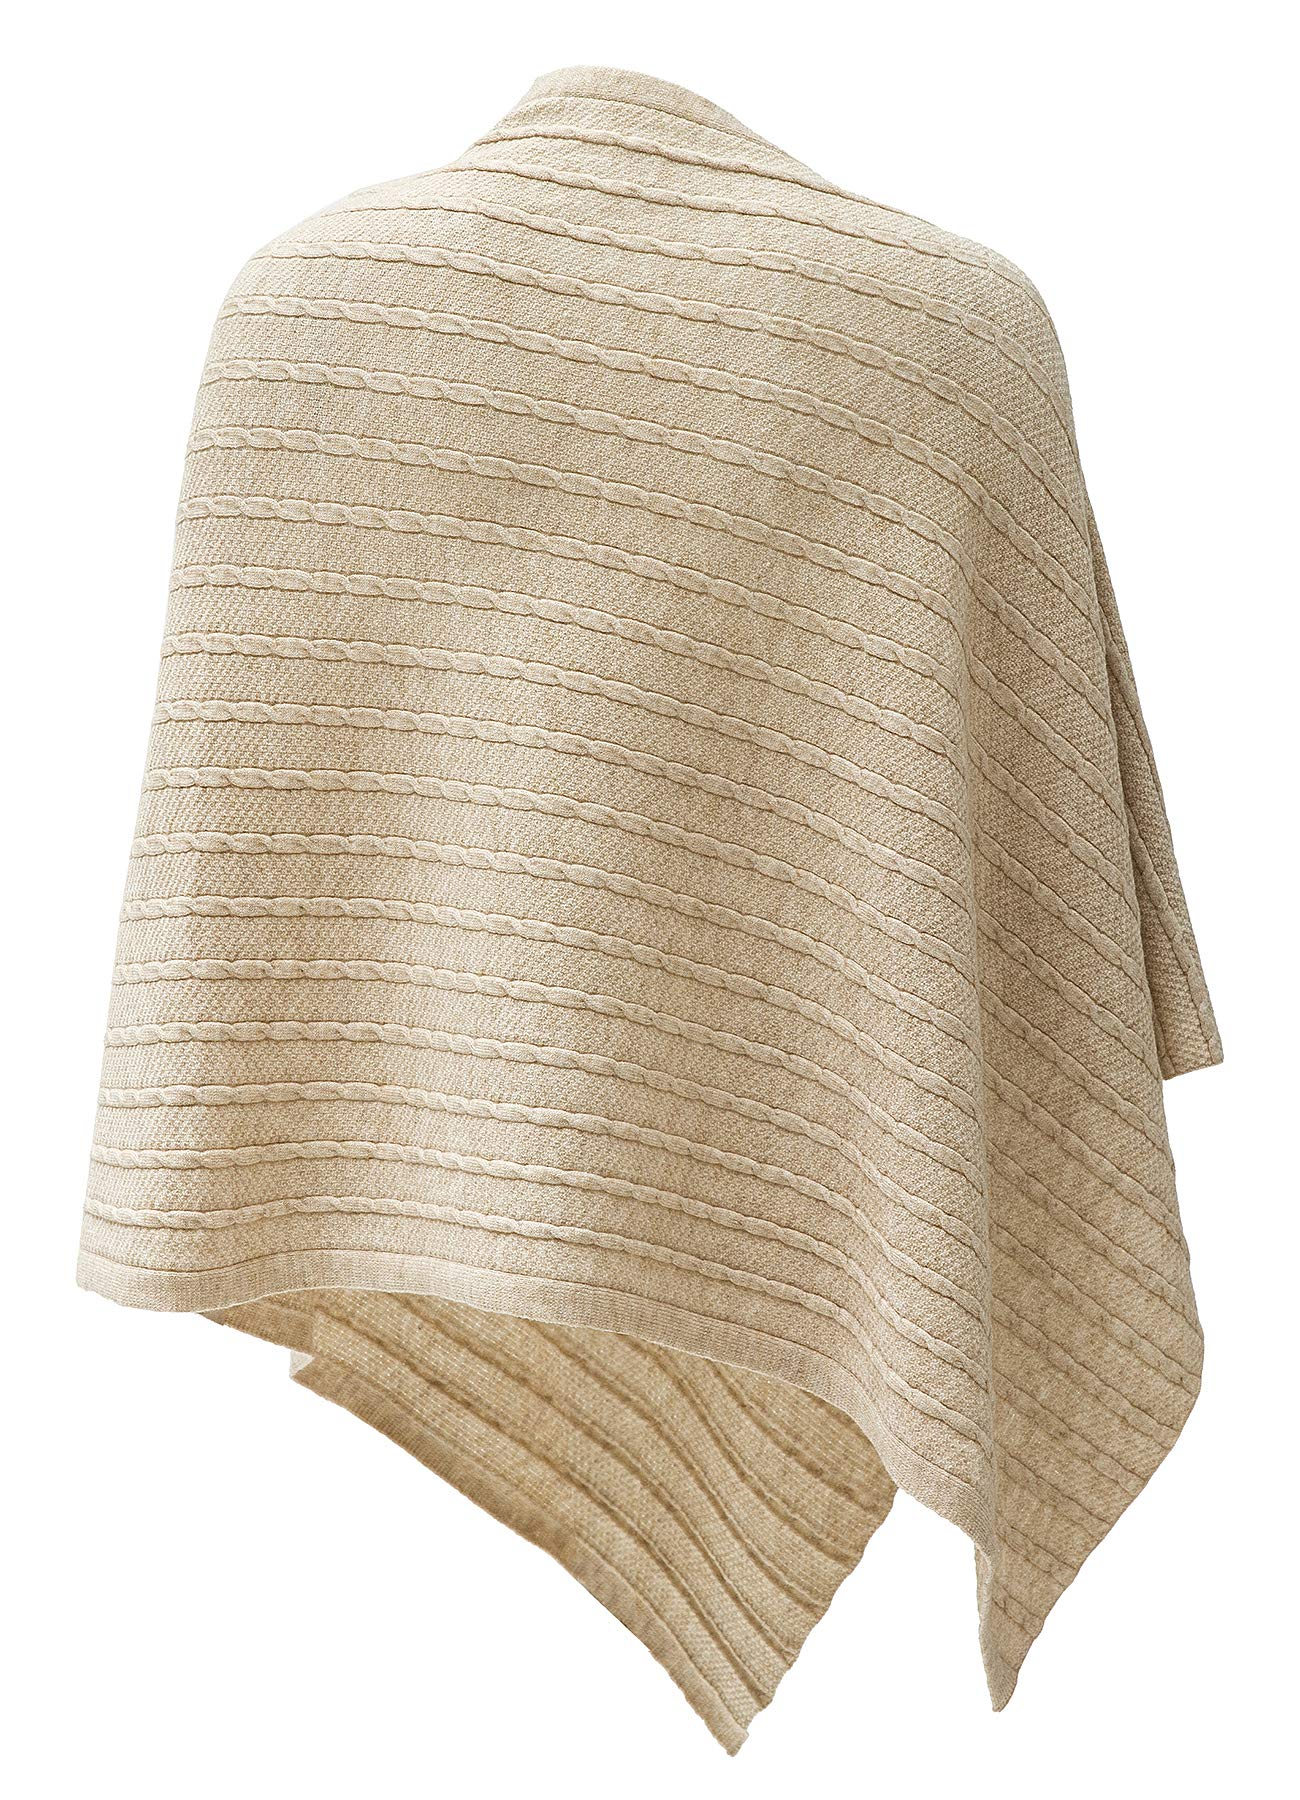 Womens Cable Pattern Lightweight Kintted Poncho Sweater with Shell Button, Versatile Scarf Shawl Cape for Spring Summer Autumn, Barley Twist by Puli (Image #2)